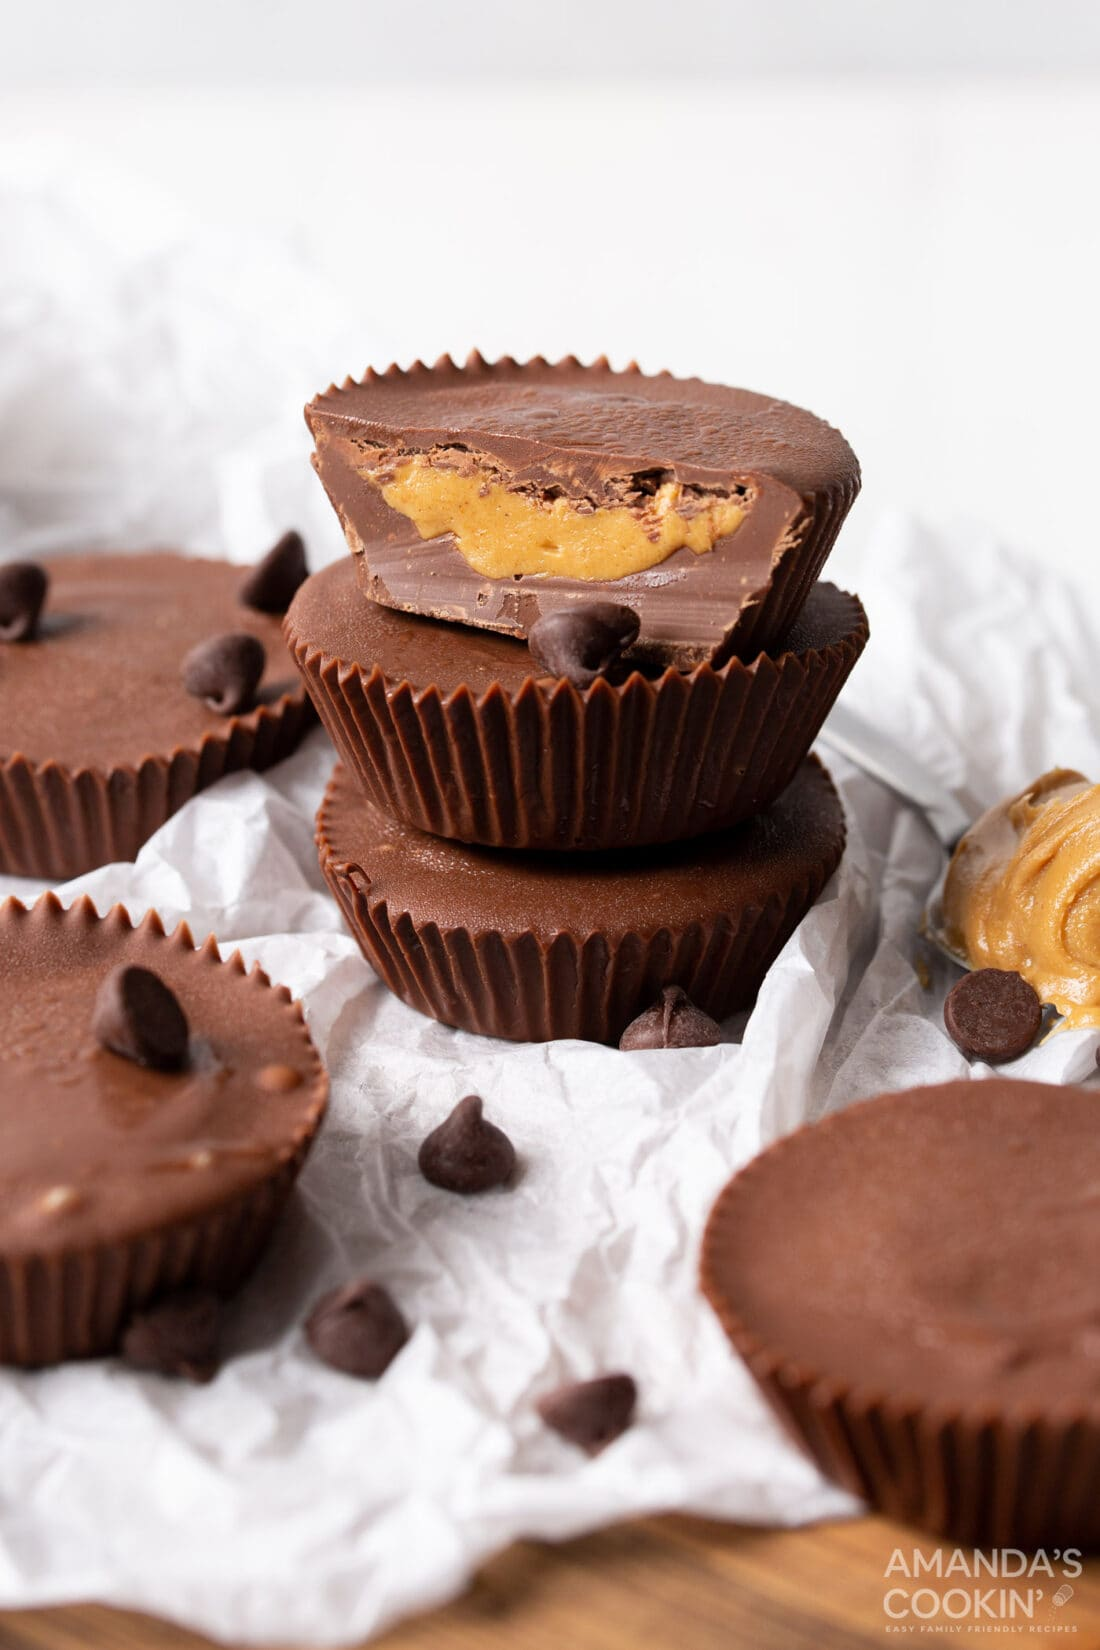 Peanut Butter Cups stacked together